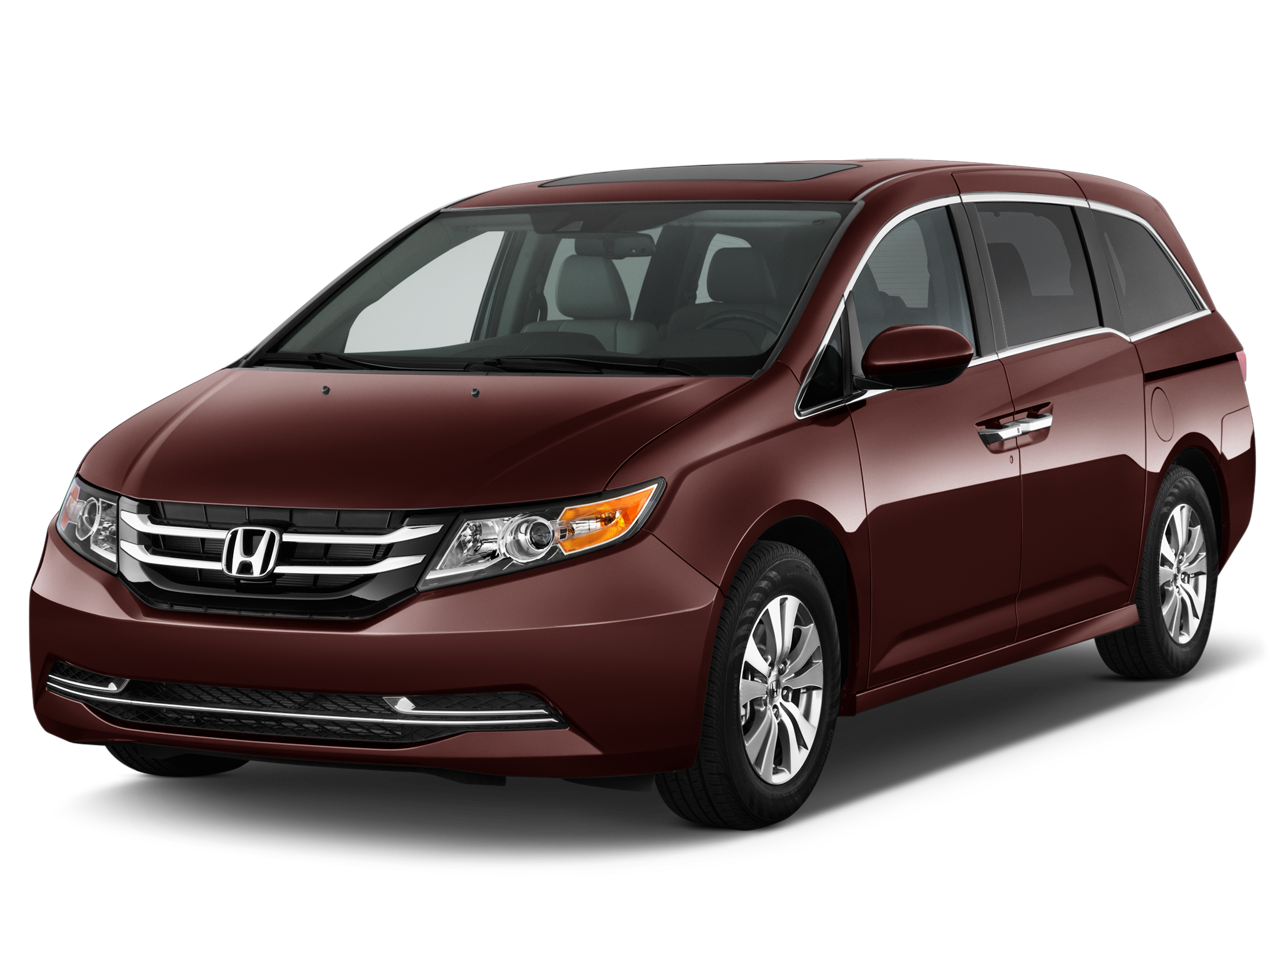 new 2017 honda odyssey se mcfadden honda. Black Bedroom Furniture Sets. Home Design Ideas